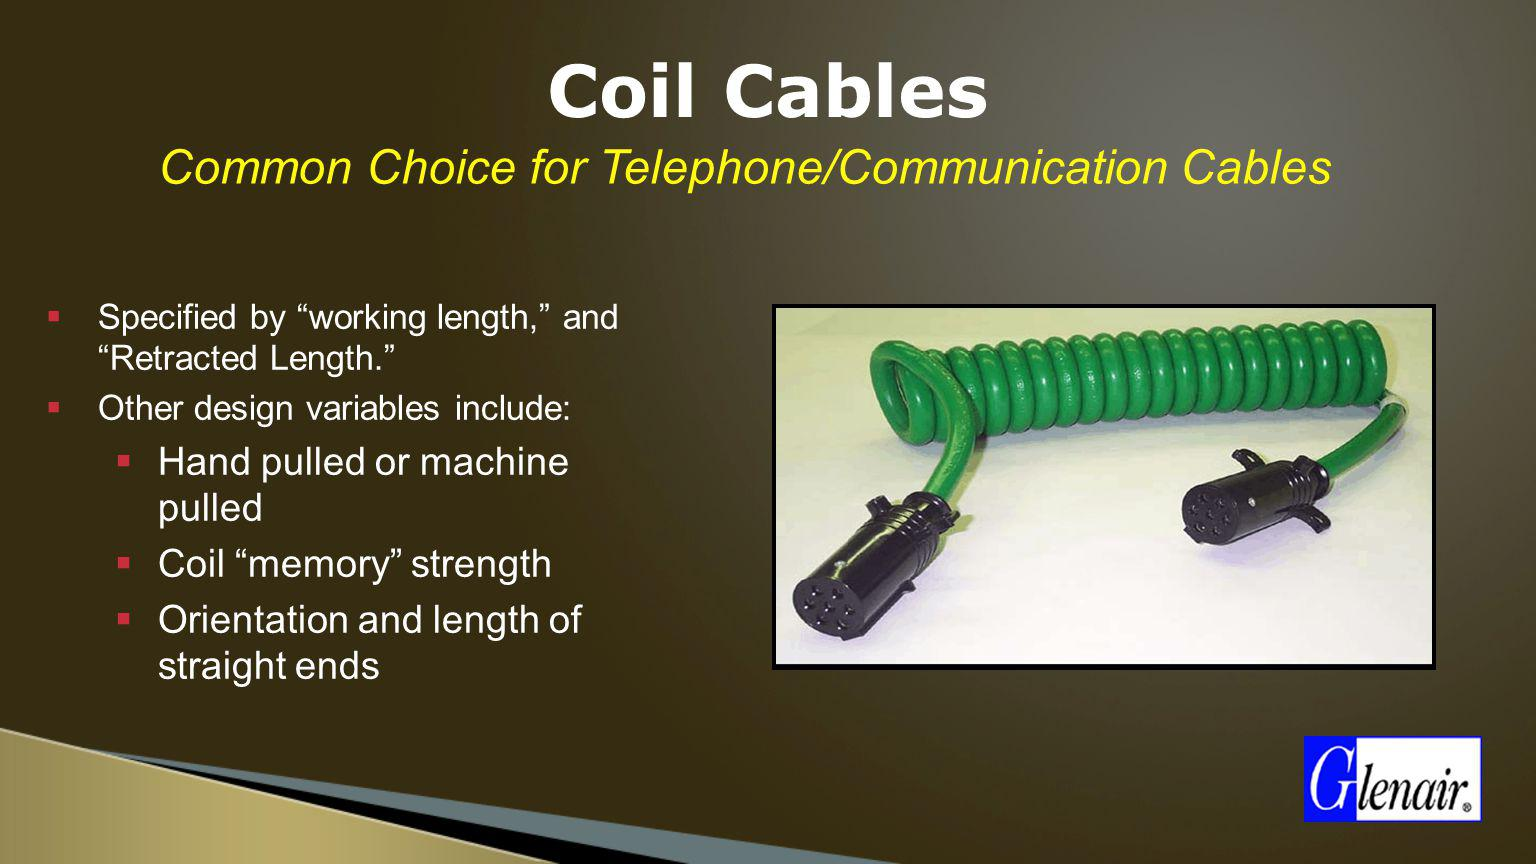 Common Choice for Telephone/Communication Cables